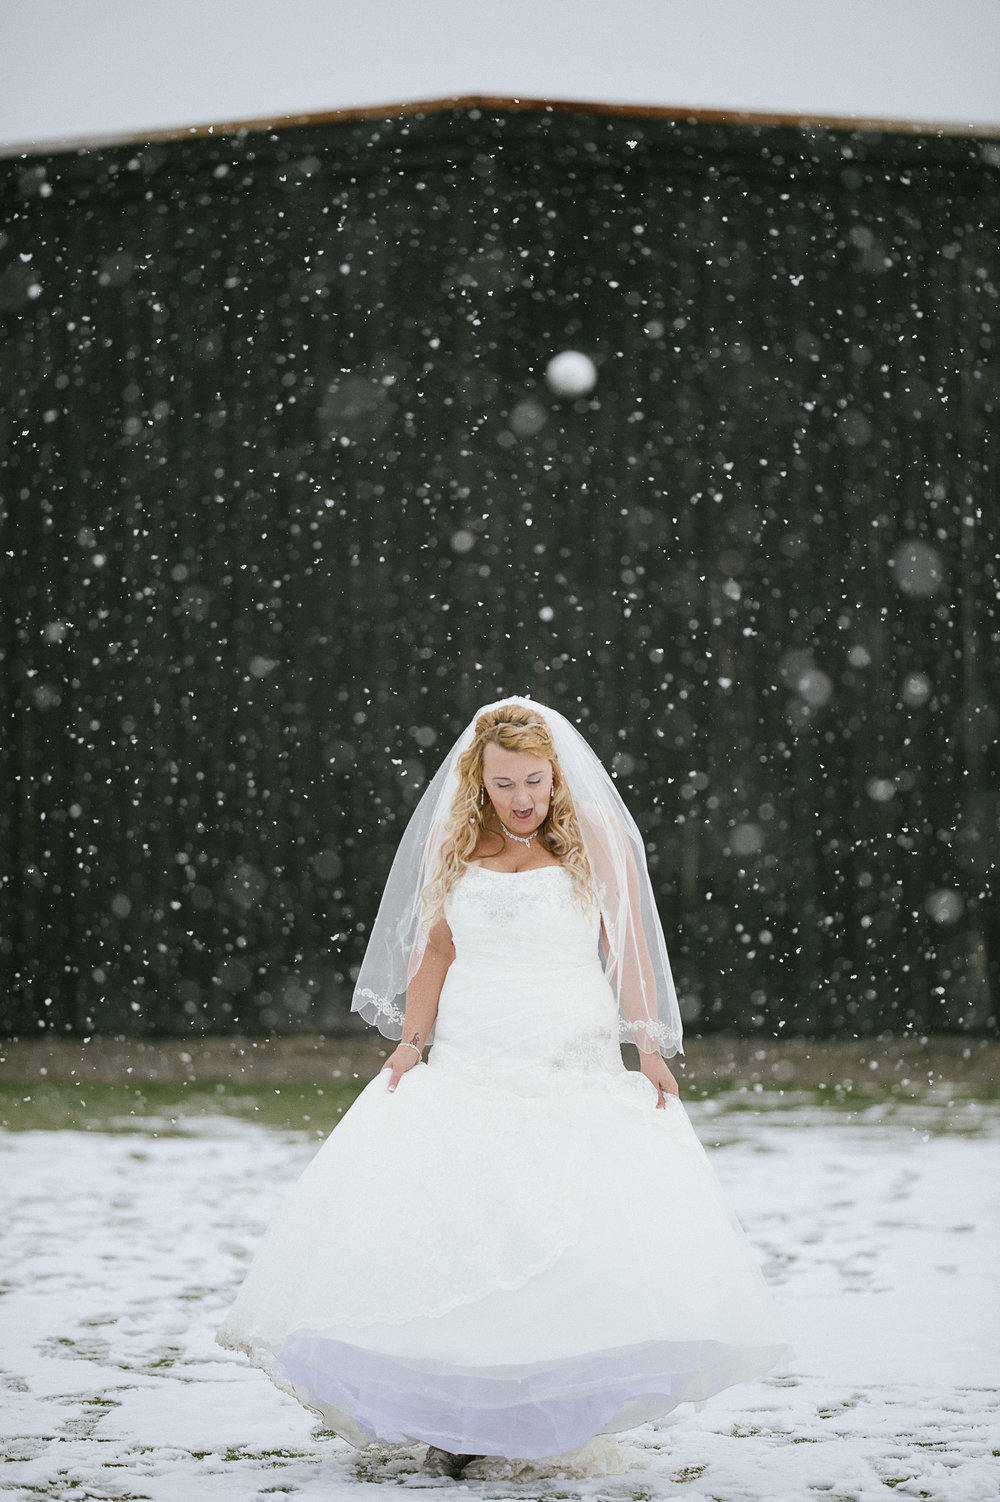 Winter Montana Wedding_Leighanne Parker + Ethan Ramos_Kelsey Lane Photography-8090.jpg